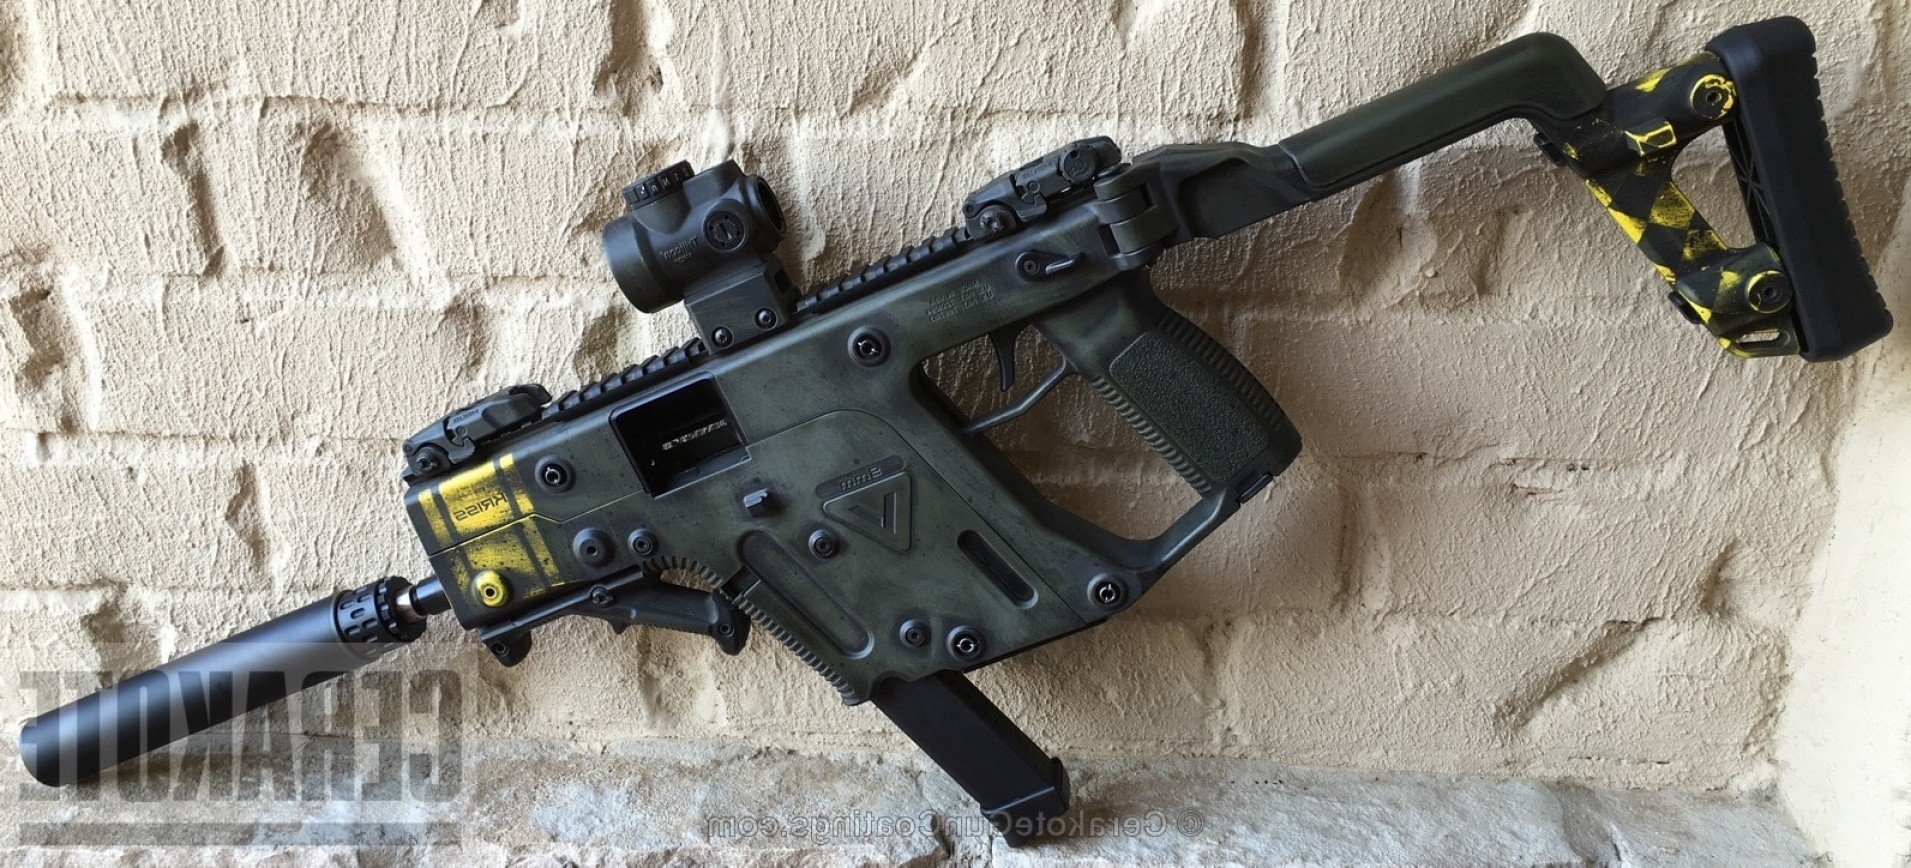 Painted Kriss Vector: Cerakote H Magpul Od Green With H Corvette Yellow And H Graphite Black